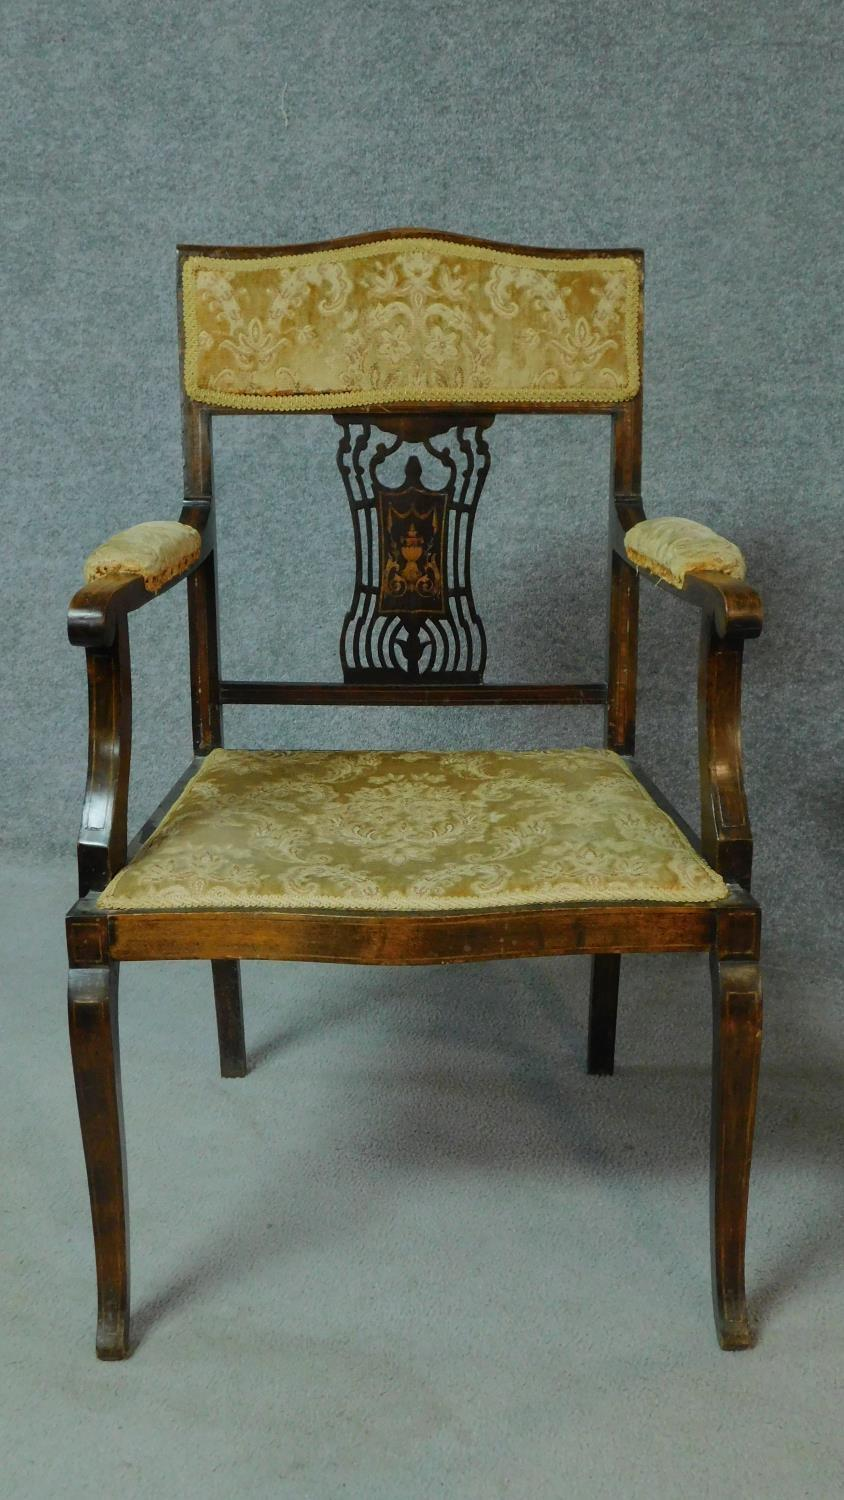 A late Victorian mahogany and satinwood inlaid armchair with urn design to the back, floral